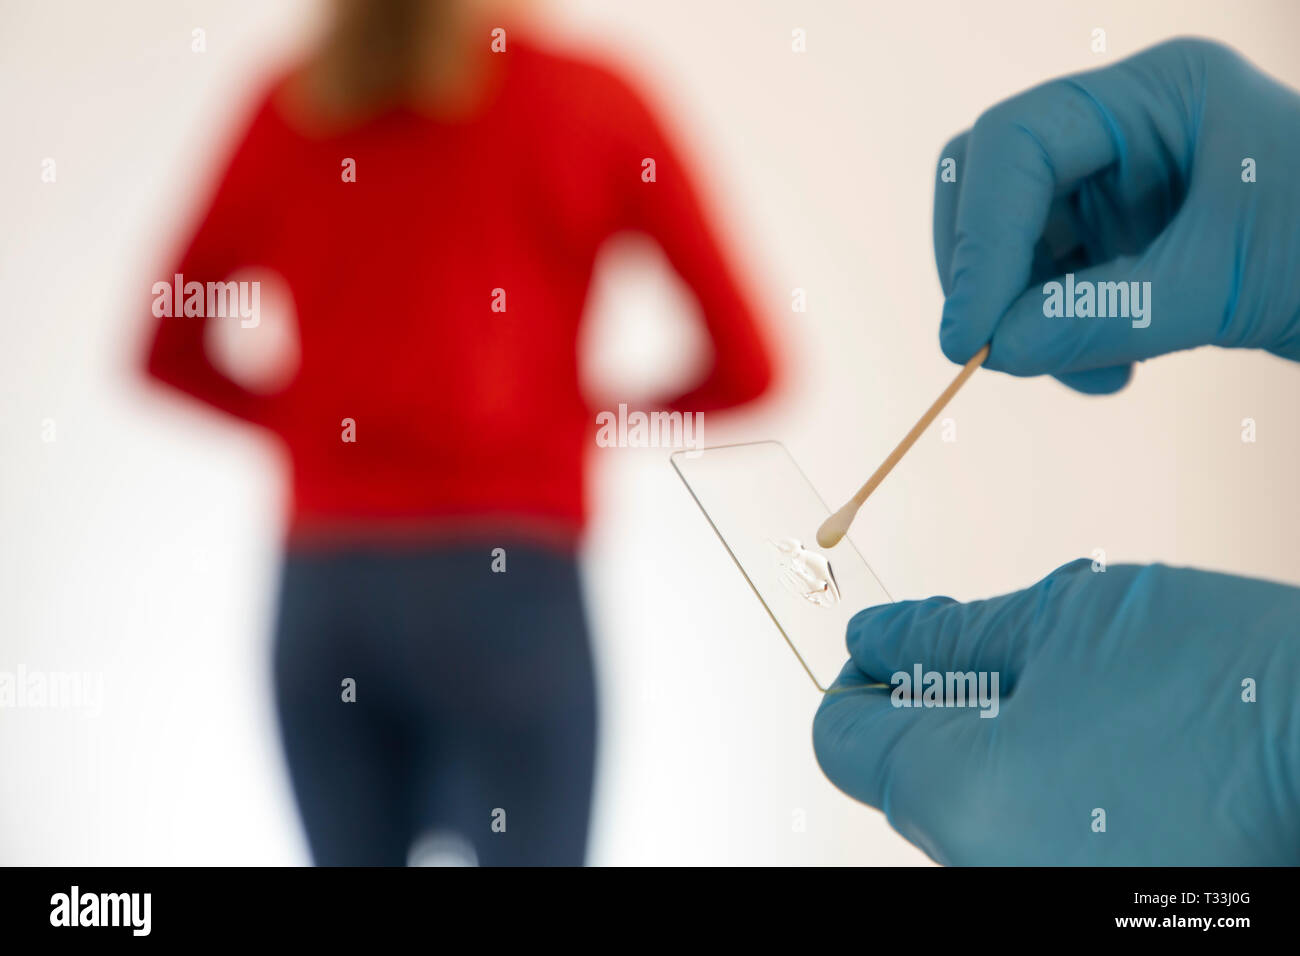 Cervical cancer, cervical carcinoma, smear after an examination of the cervical canal, the smear is examined, microscopically, for cell changes, PAP t - Stock Image